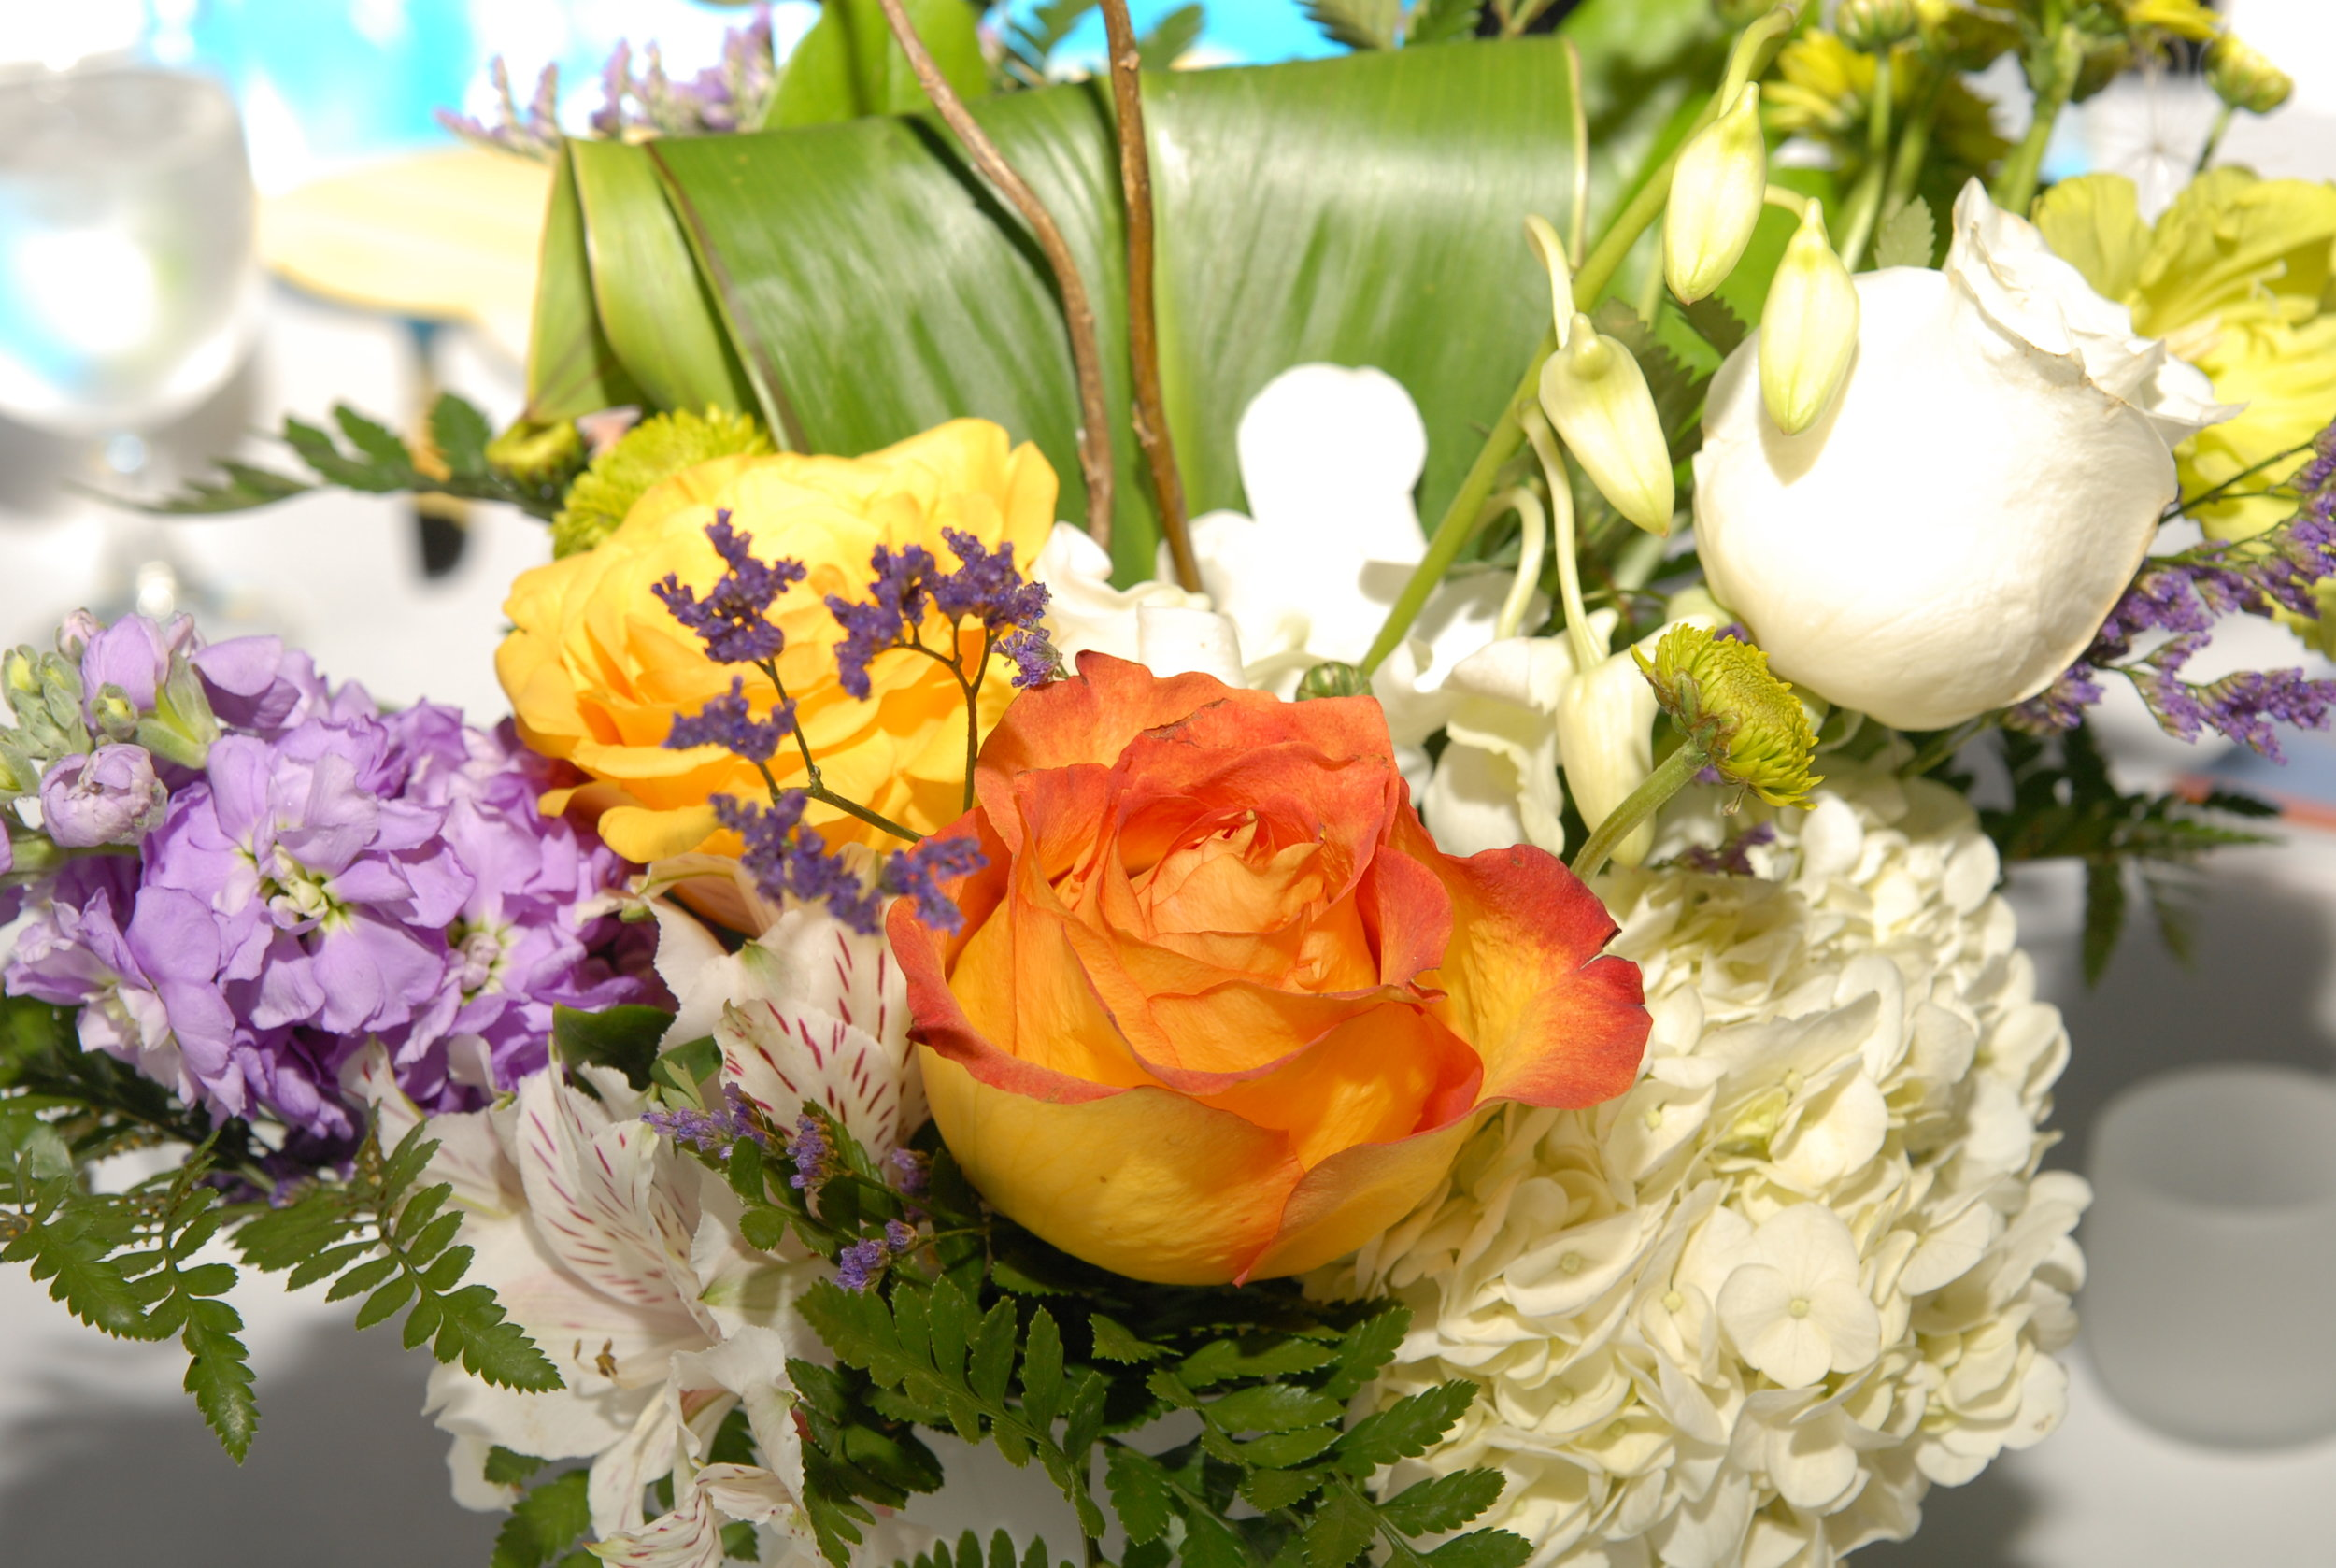 Event management Chicago flowers for gala fundraiser Joanne Klee Marketing